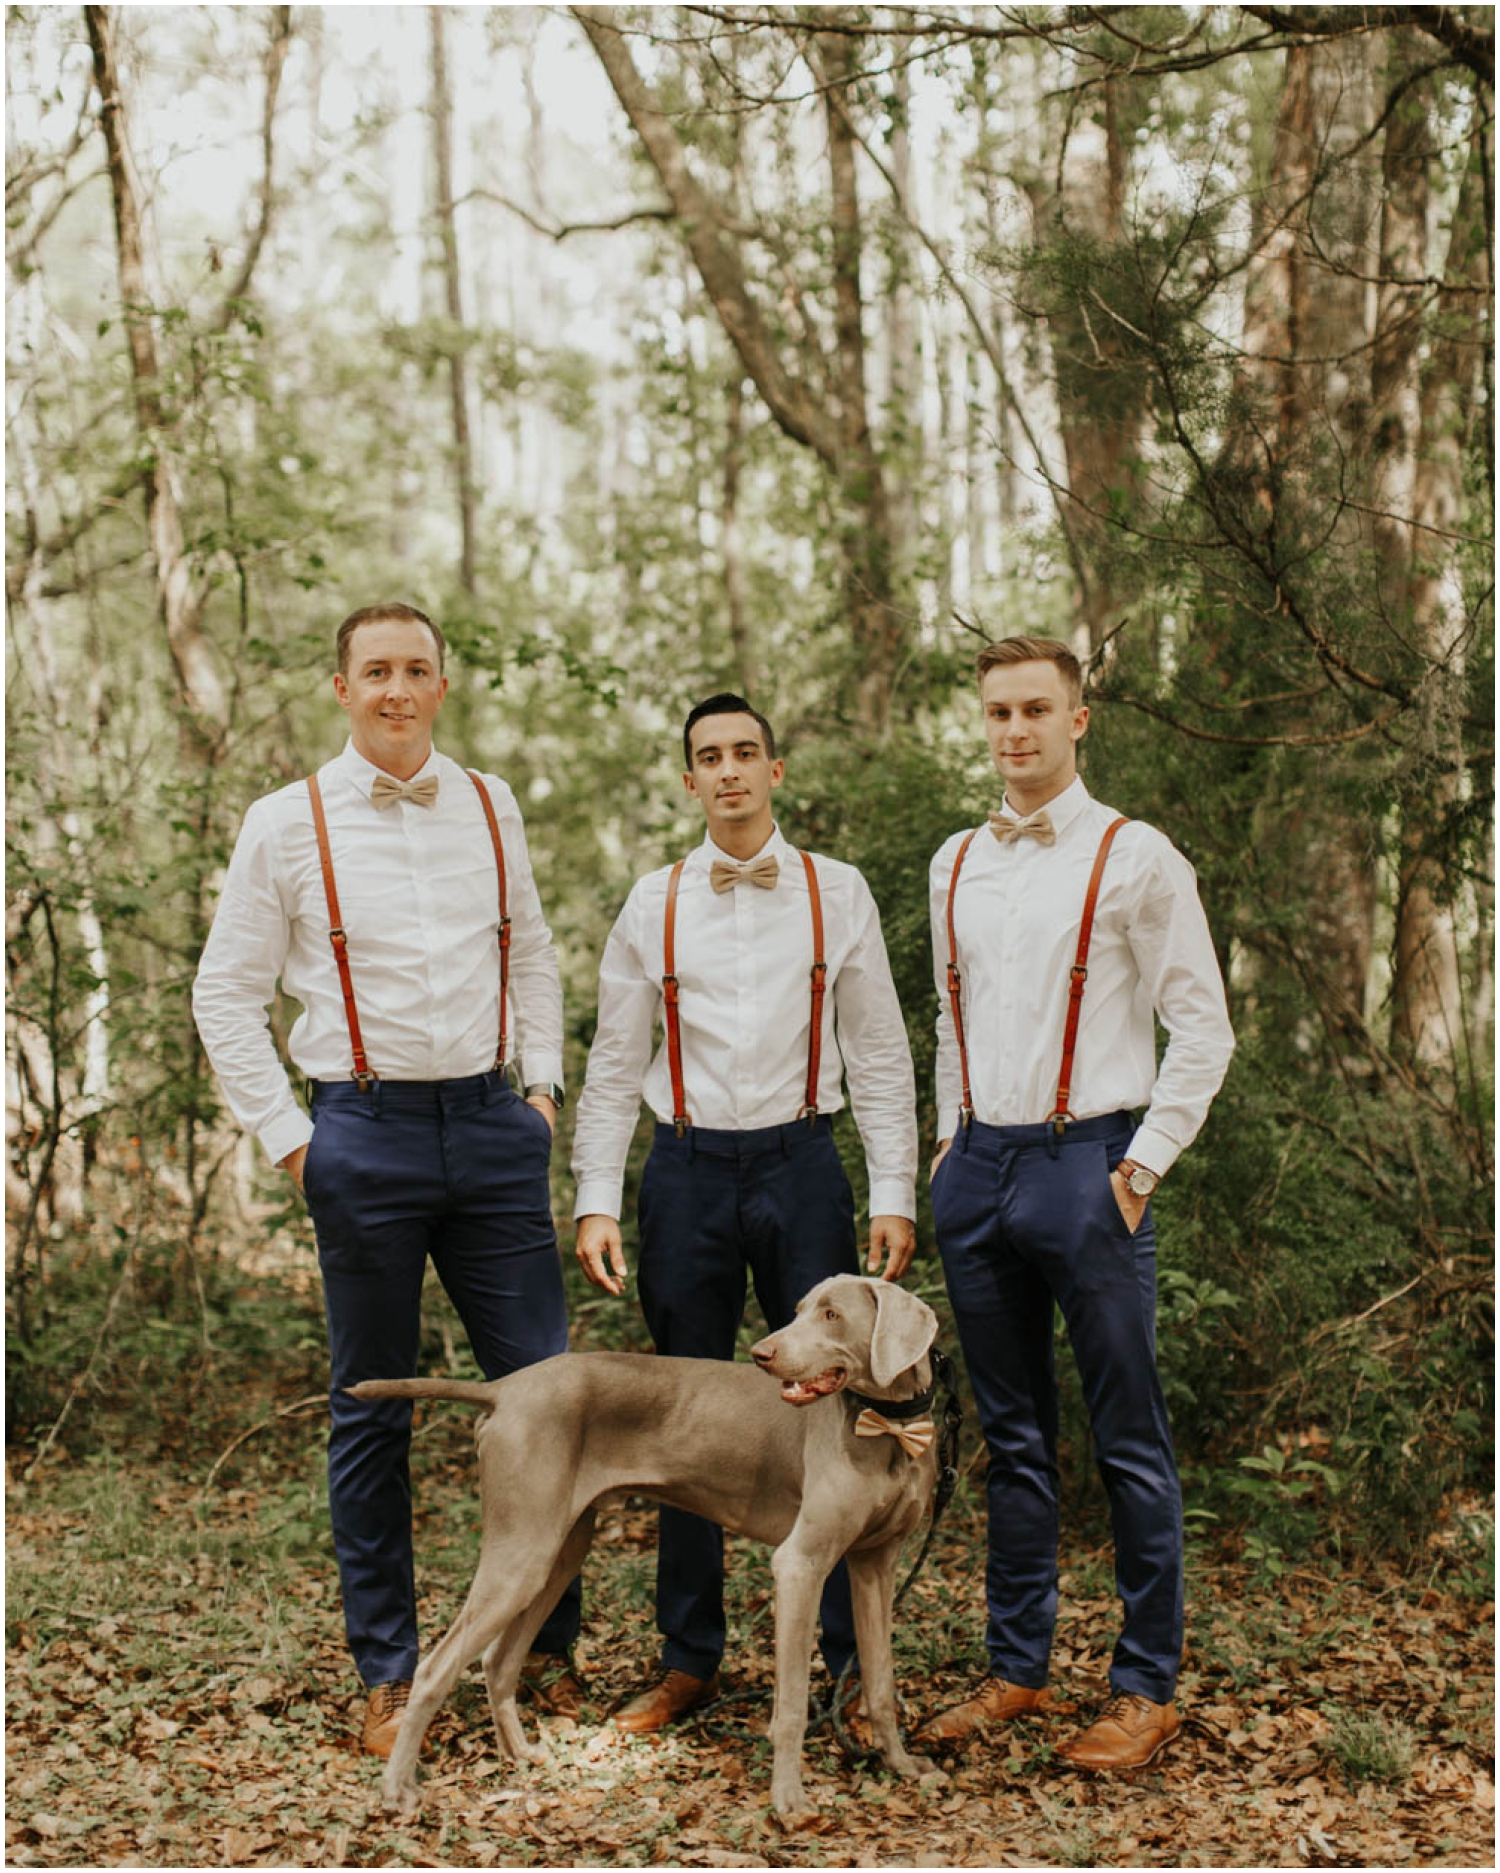 Groomsmen and Groom with their dog